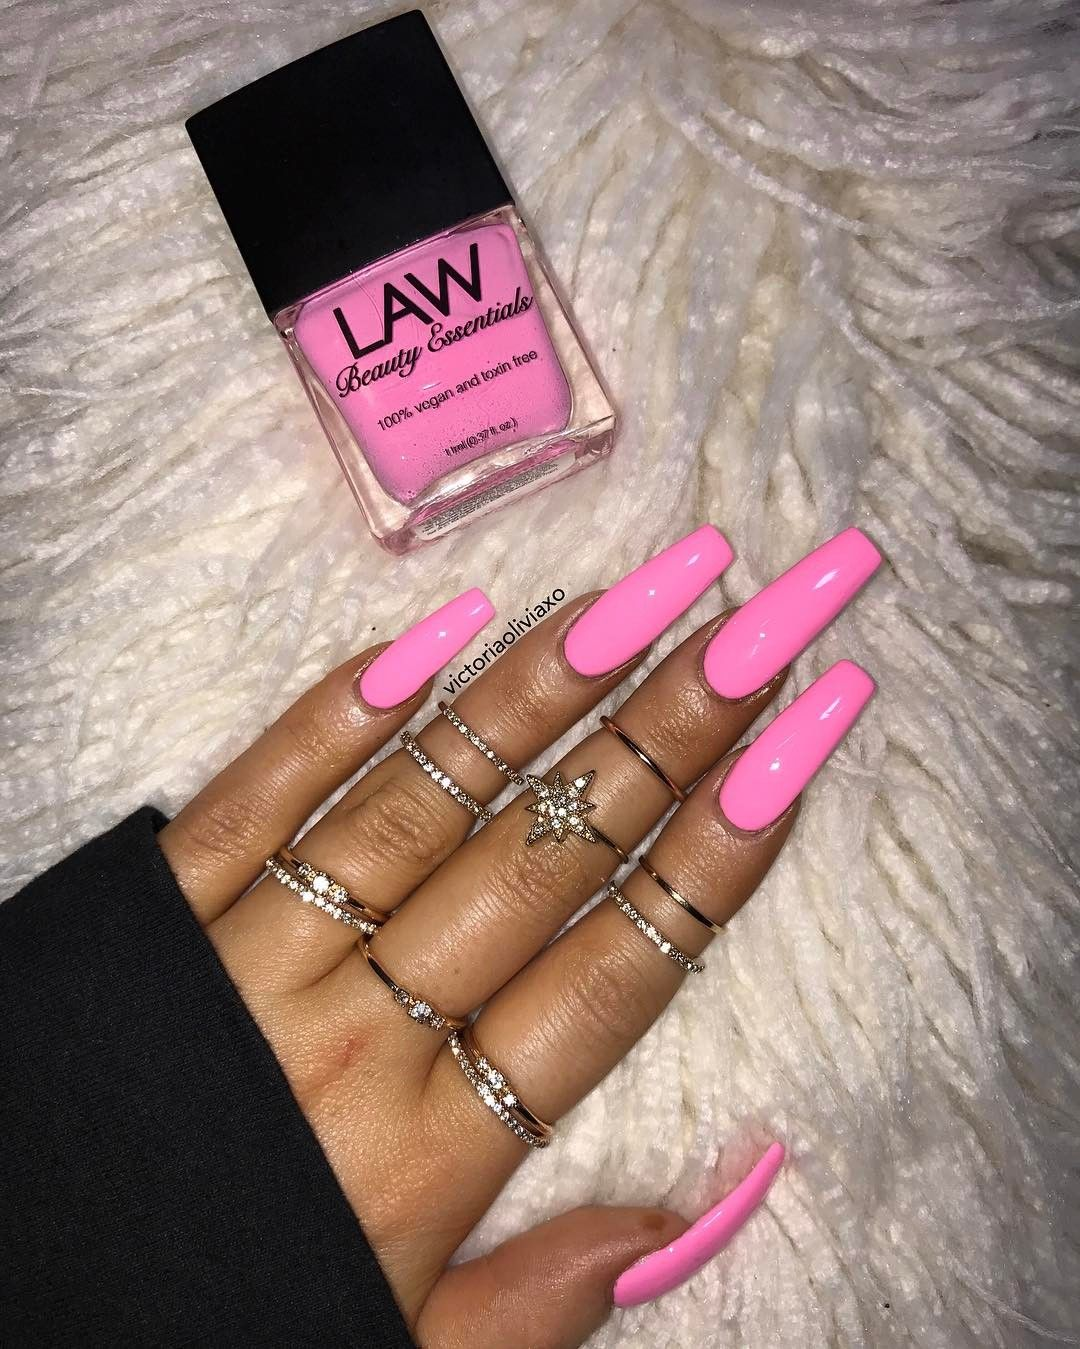 Pink Pouty Pout From Lawbeautyessentials Instanails Nails Nails Notd Nailstagram Nailswag Pink Acrylic Nails Bright Pink Nails Long Square Acrylic Nails